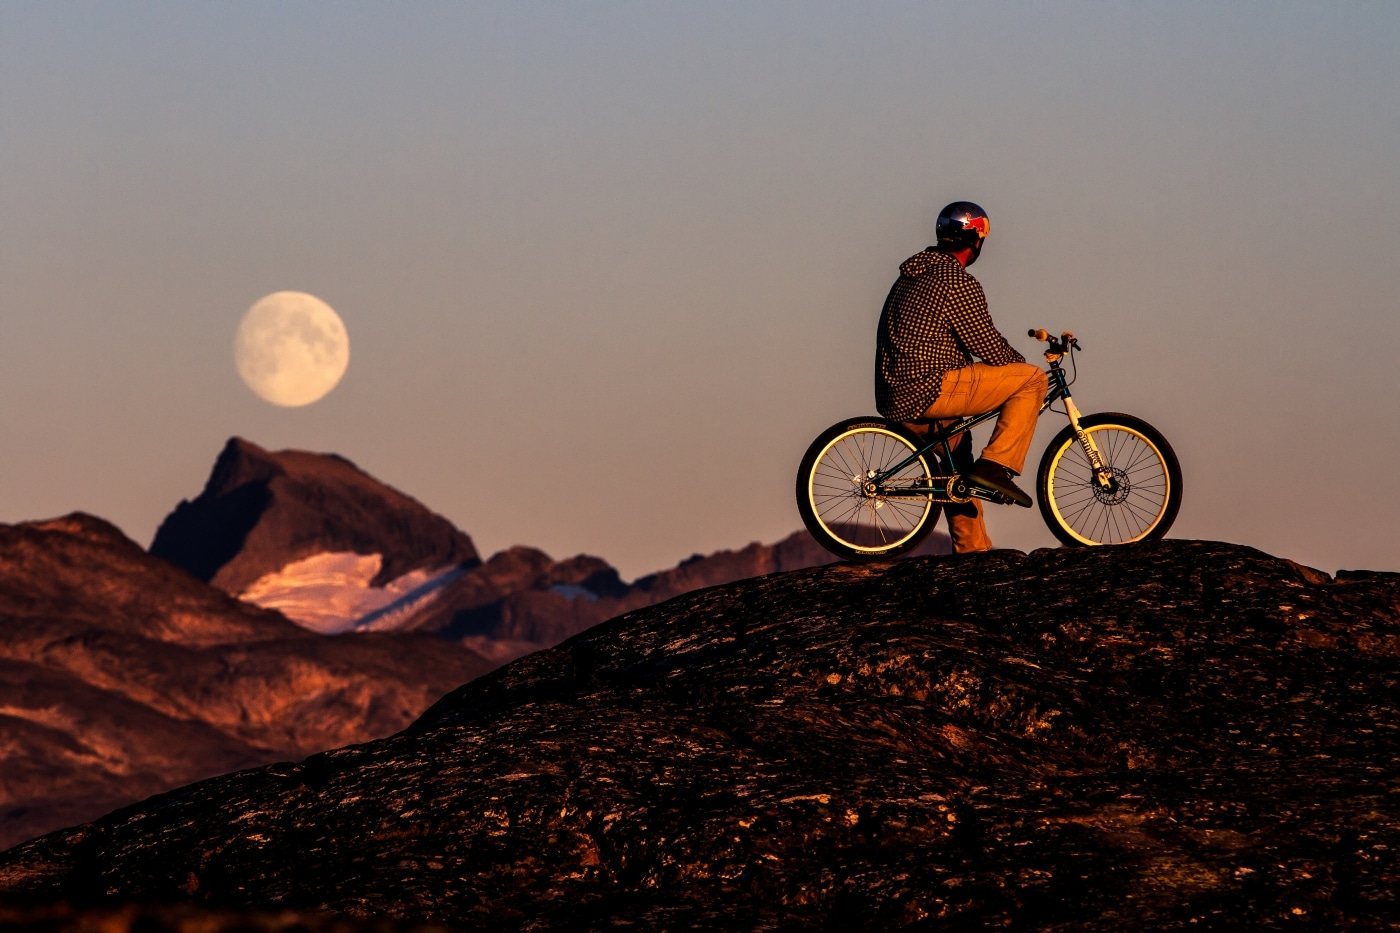 Red Bull trial biker Petr Kraus and the full moon at sunset in Kangaamiut in Greenland. Photo by Mads Pihl - Visit Greenland